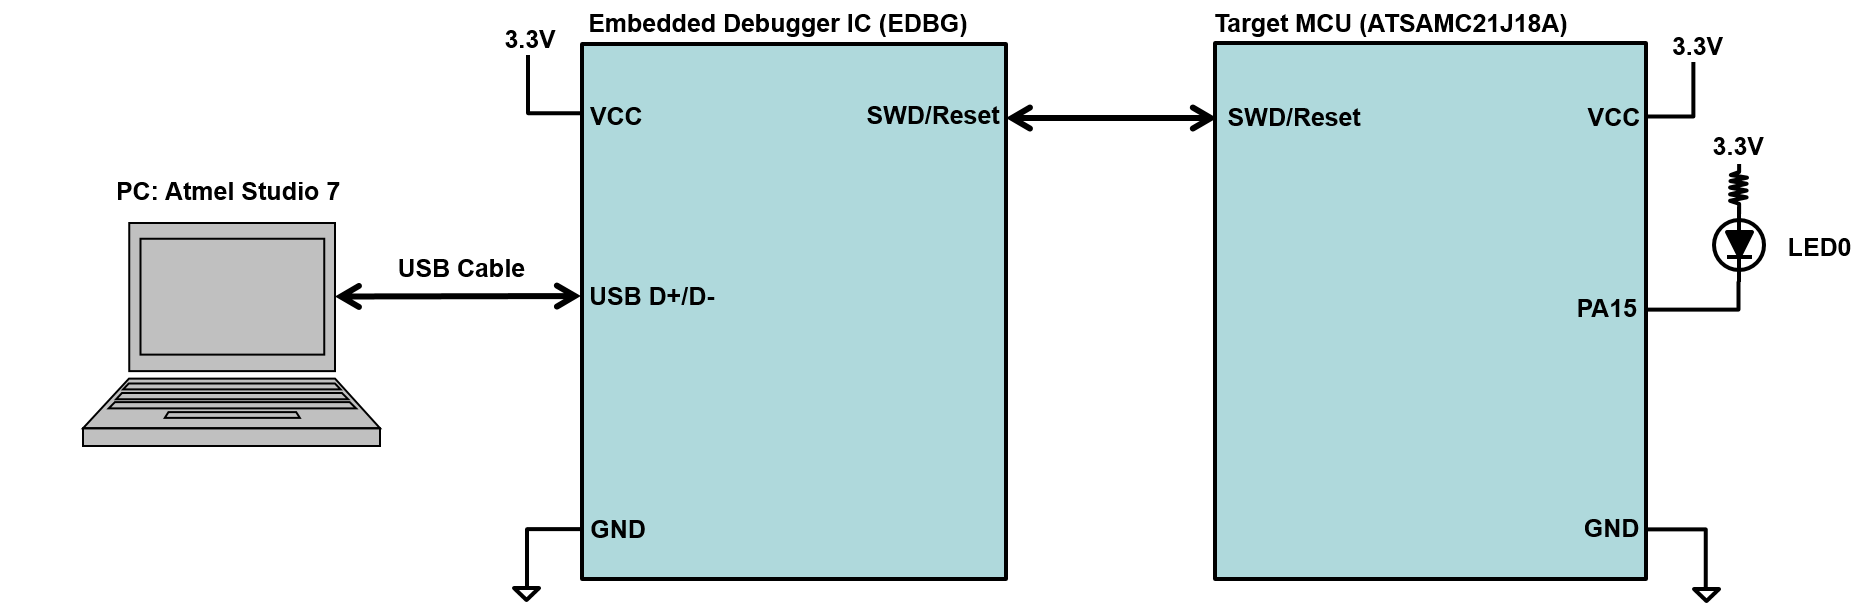 xpro-diagram-systick-initialization.png